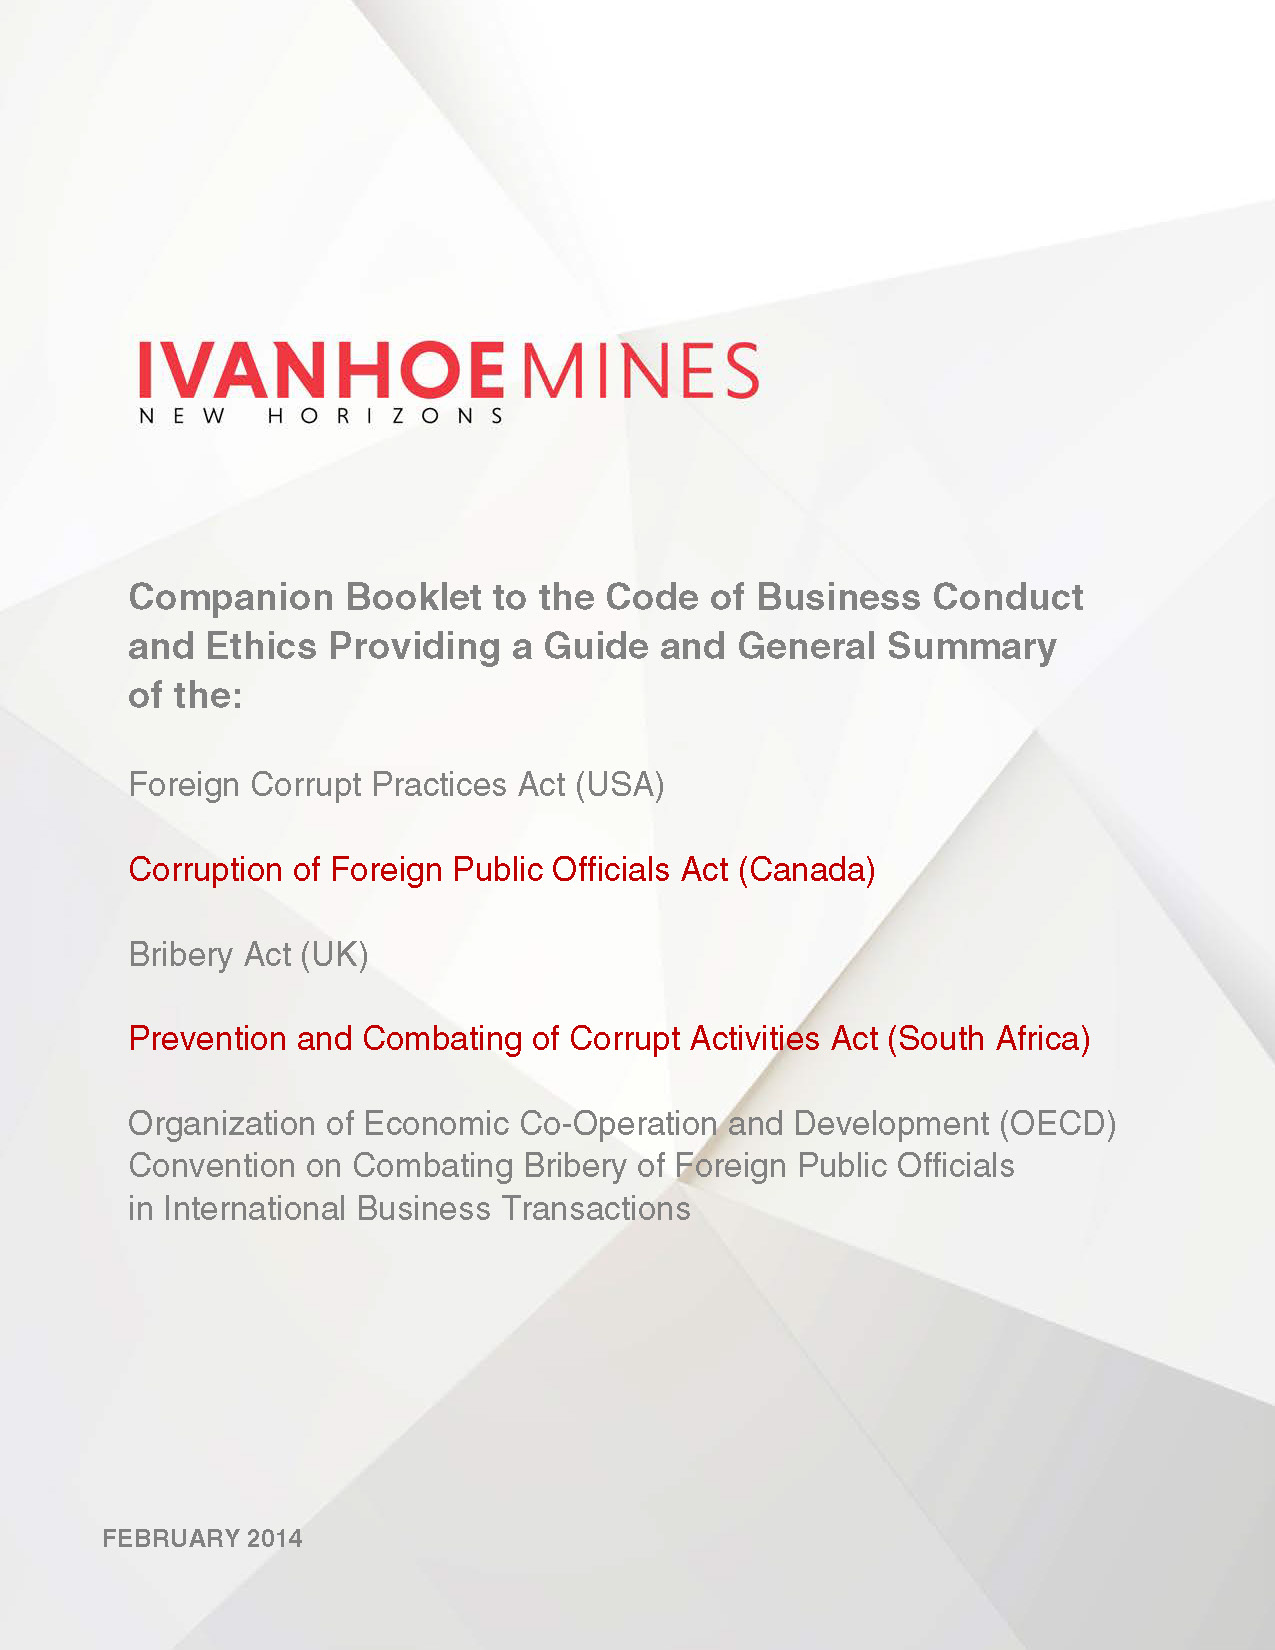 Companion Booklet to the Code  of Business Conduct and Ethics